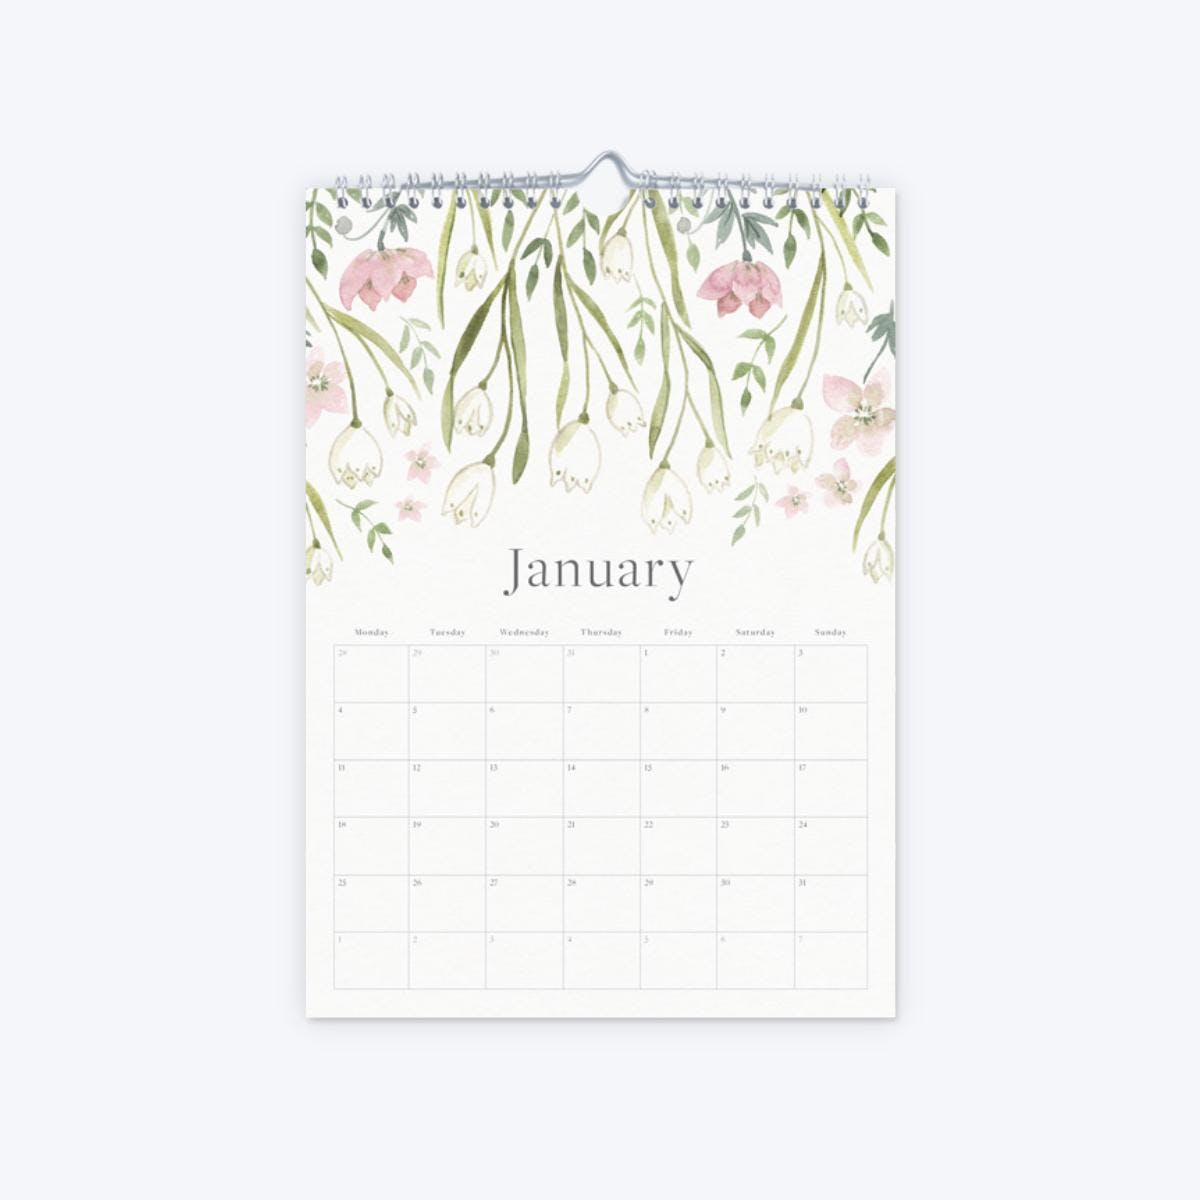 s product image 77 2021 floral calendar january